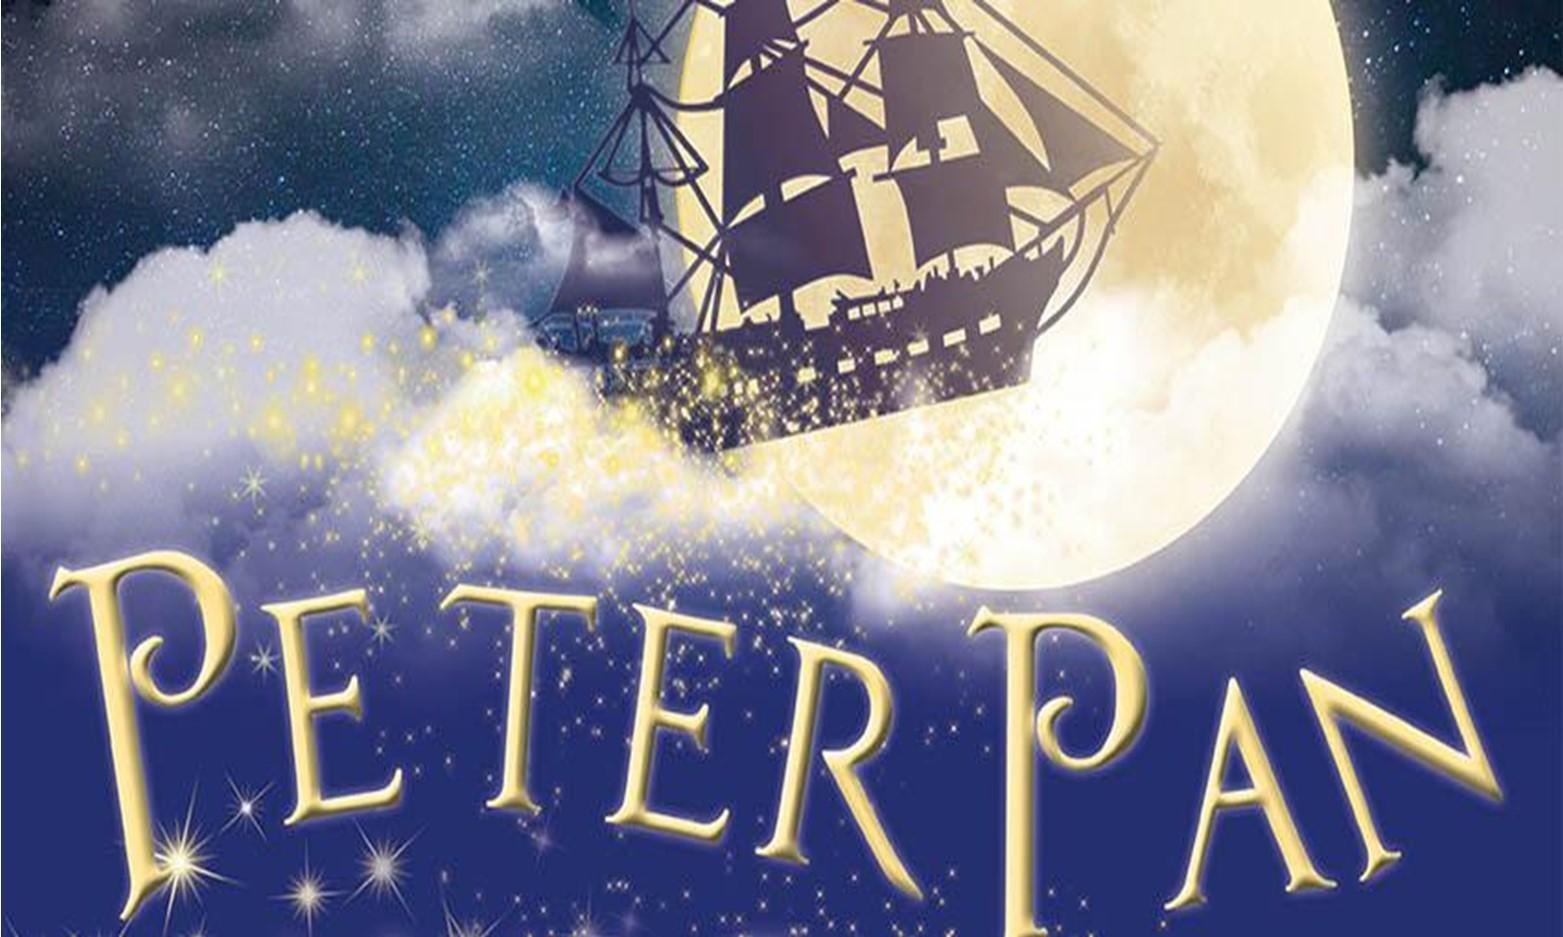 Peter Pan at Aberystwyth Arts Centre